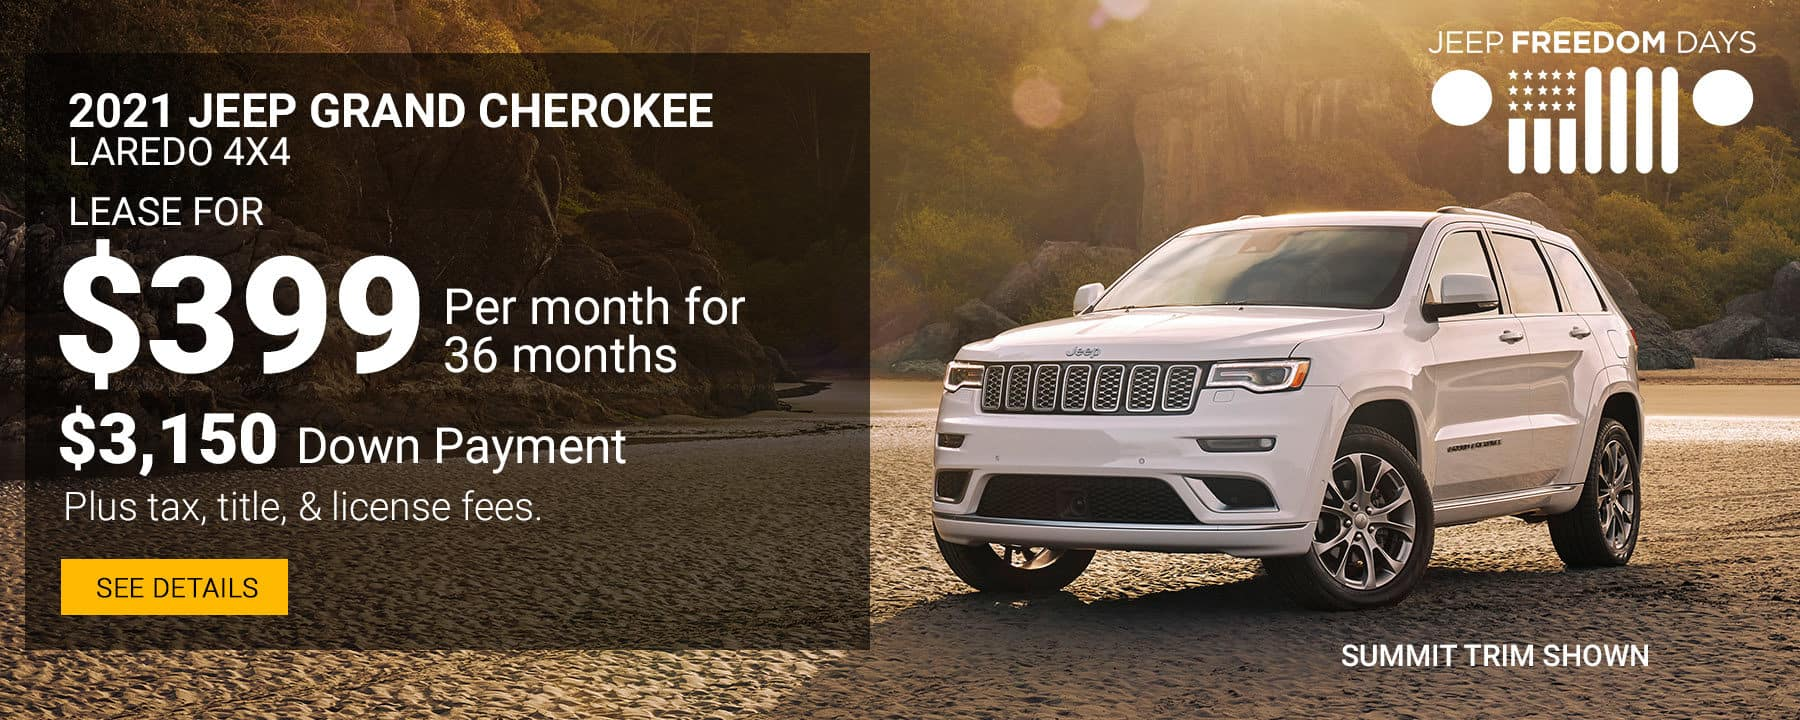 During the Jeep Freedom Days Event, Lease a 2021 Jeep Grand Cherokee Laredo 4X4 for $399 per month with $3,150 down.